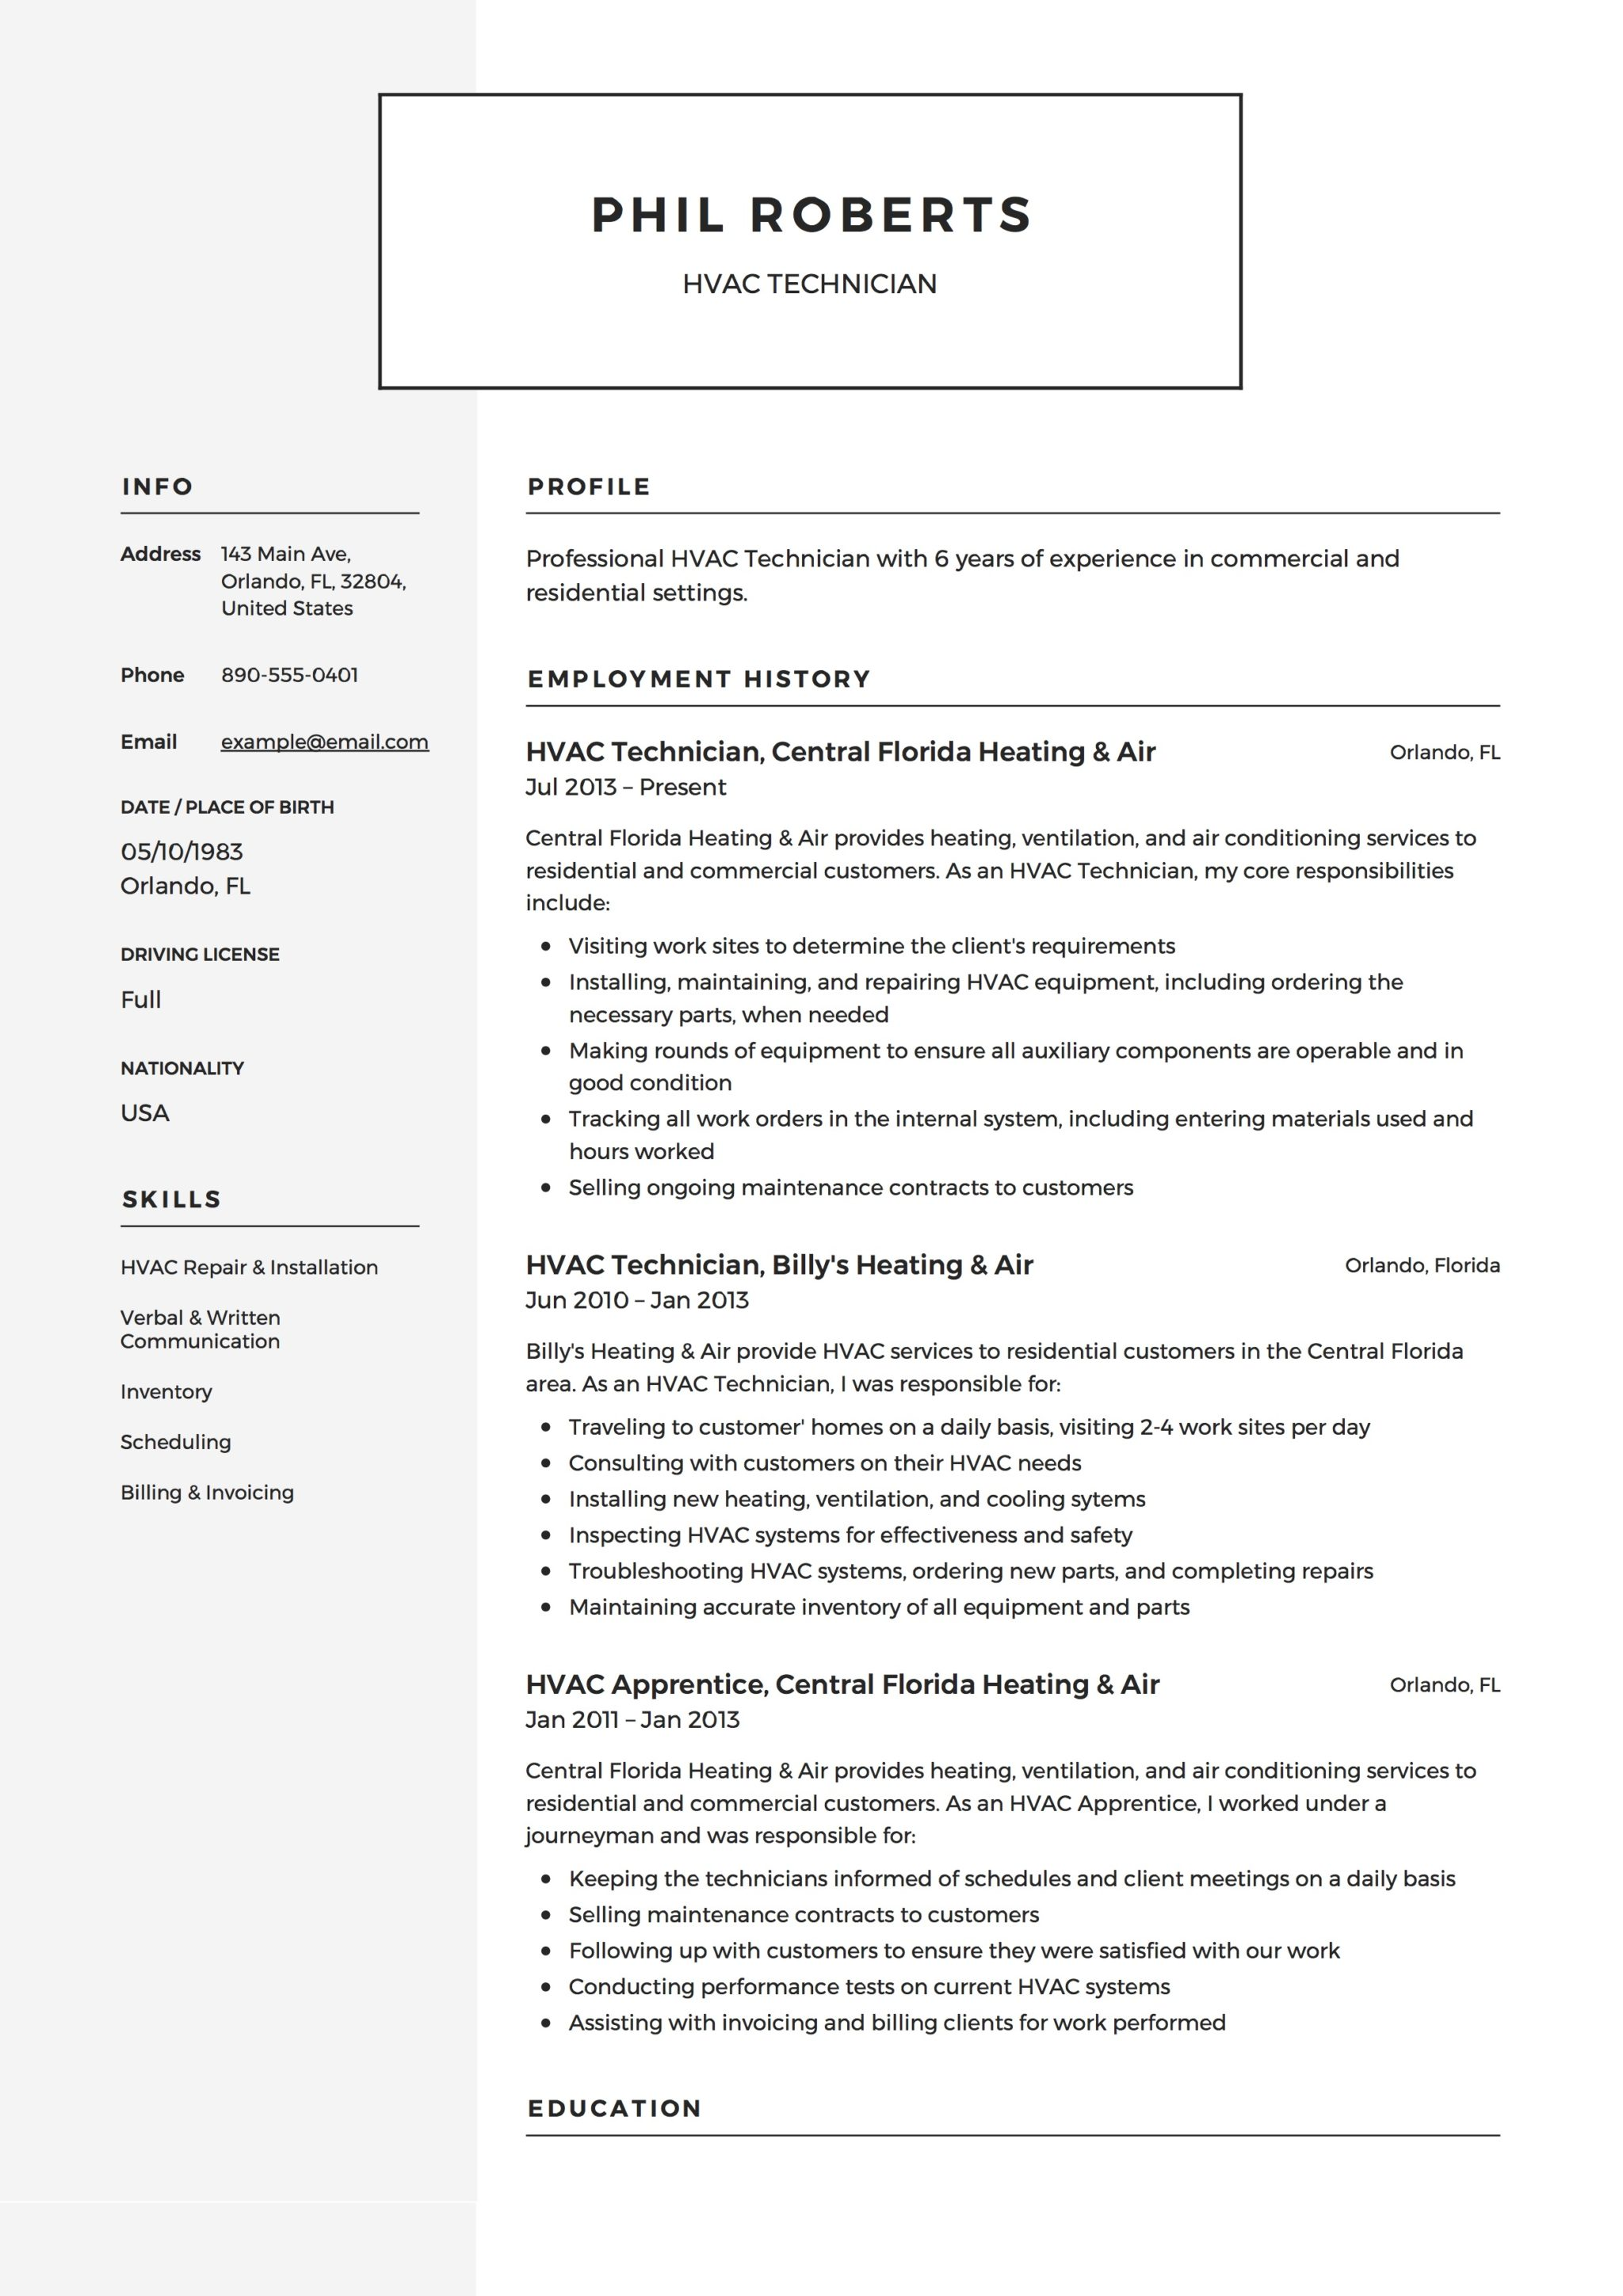 Modern HVAC Technician Resume Example